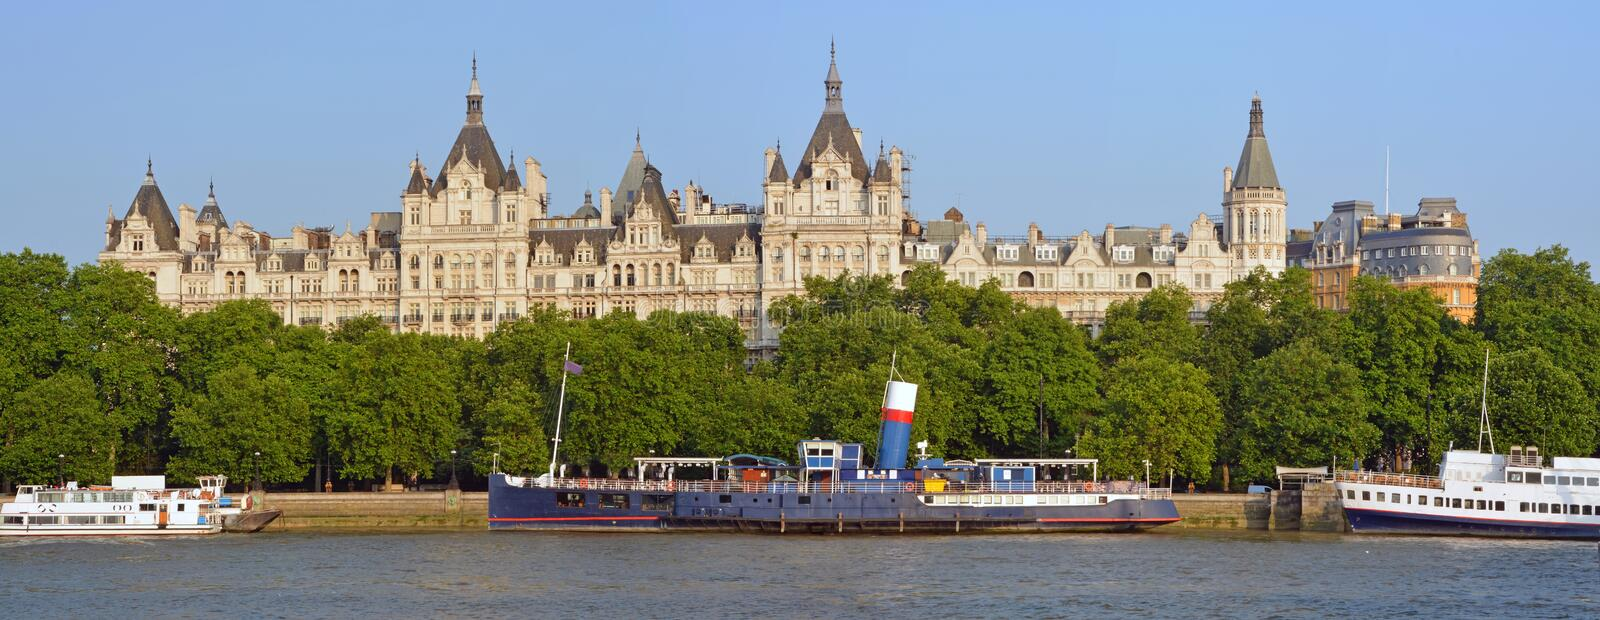 Victoria Embankment Early Morning Panorama mit Wh stockfotografie